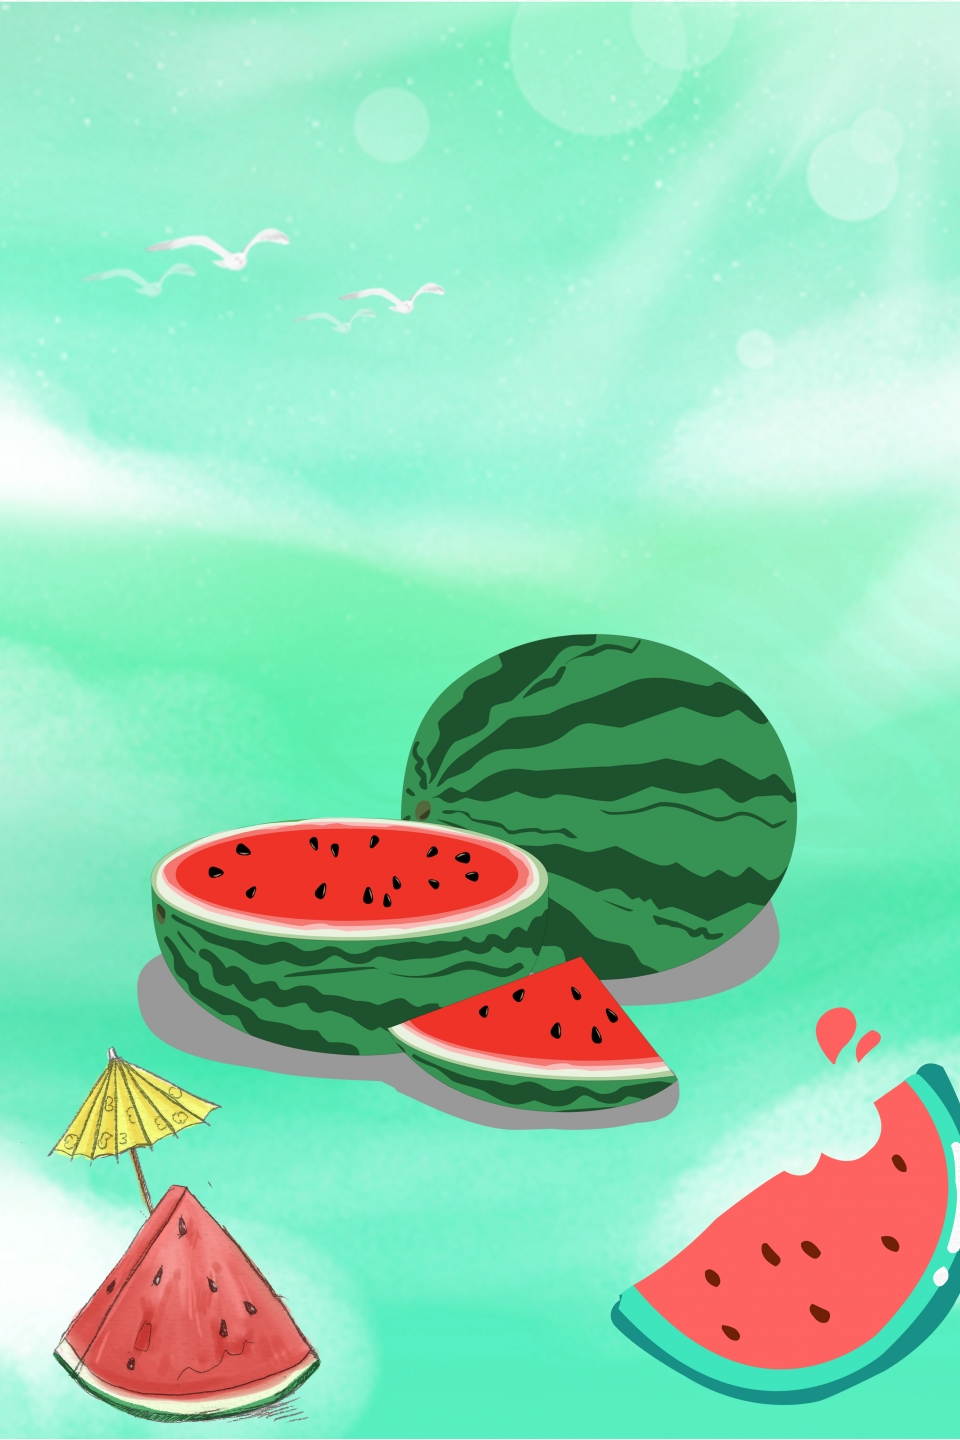 Green Cartoon Vector Watermelon Season Poster Background Watermelon Watermelon Juice Watermelon Poster Background Image For Free Download